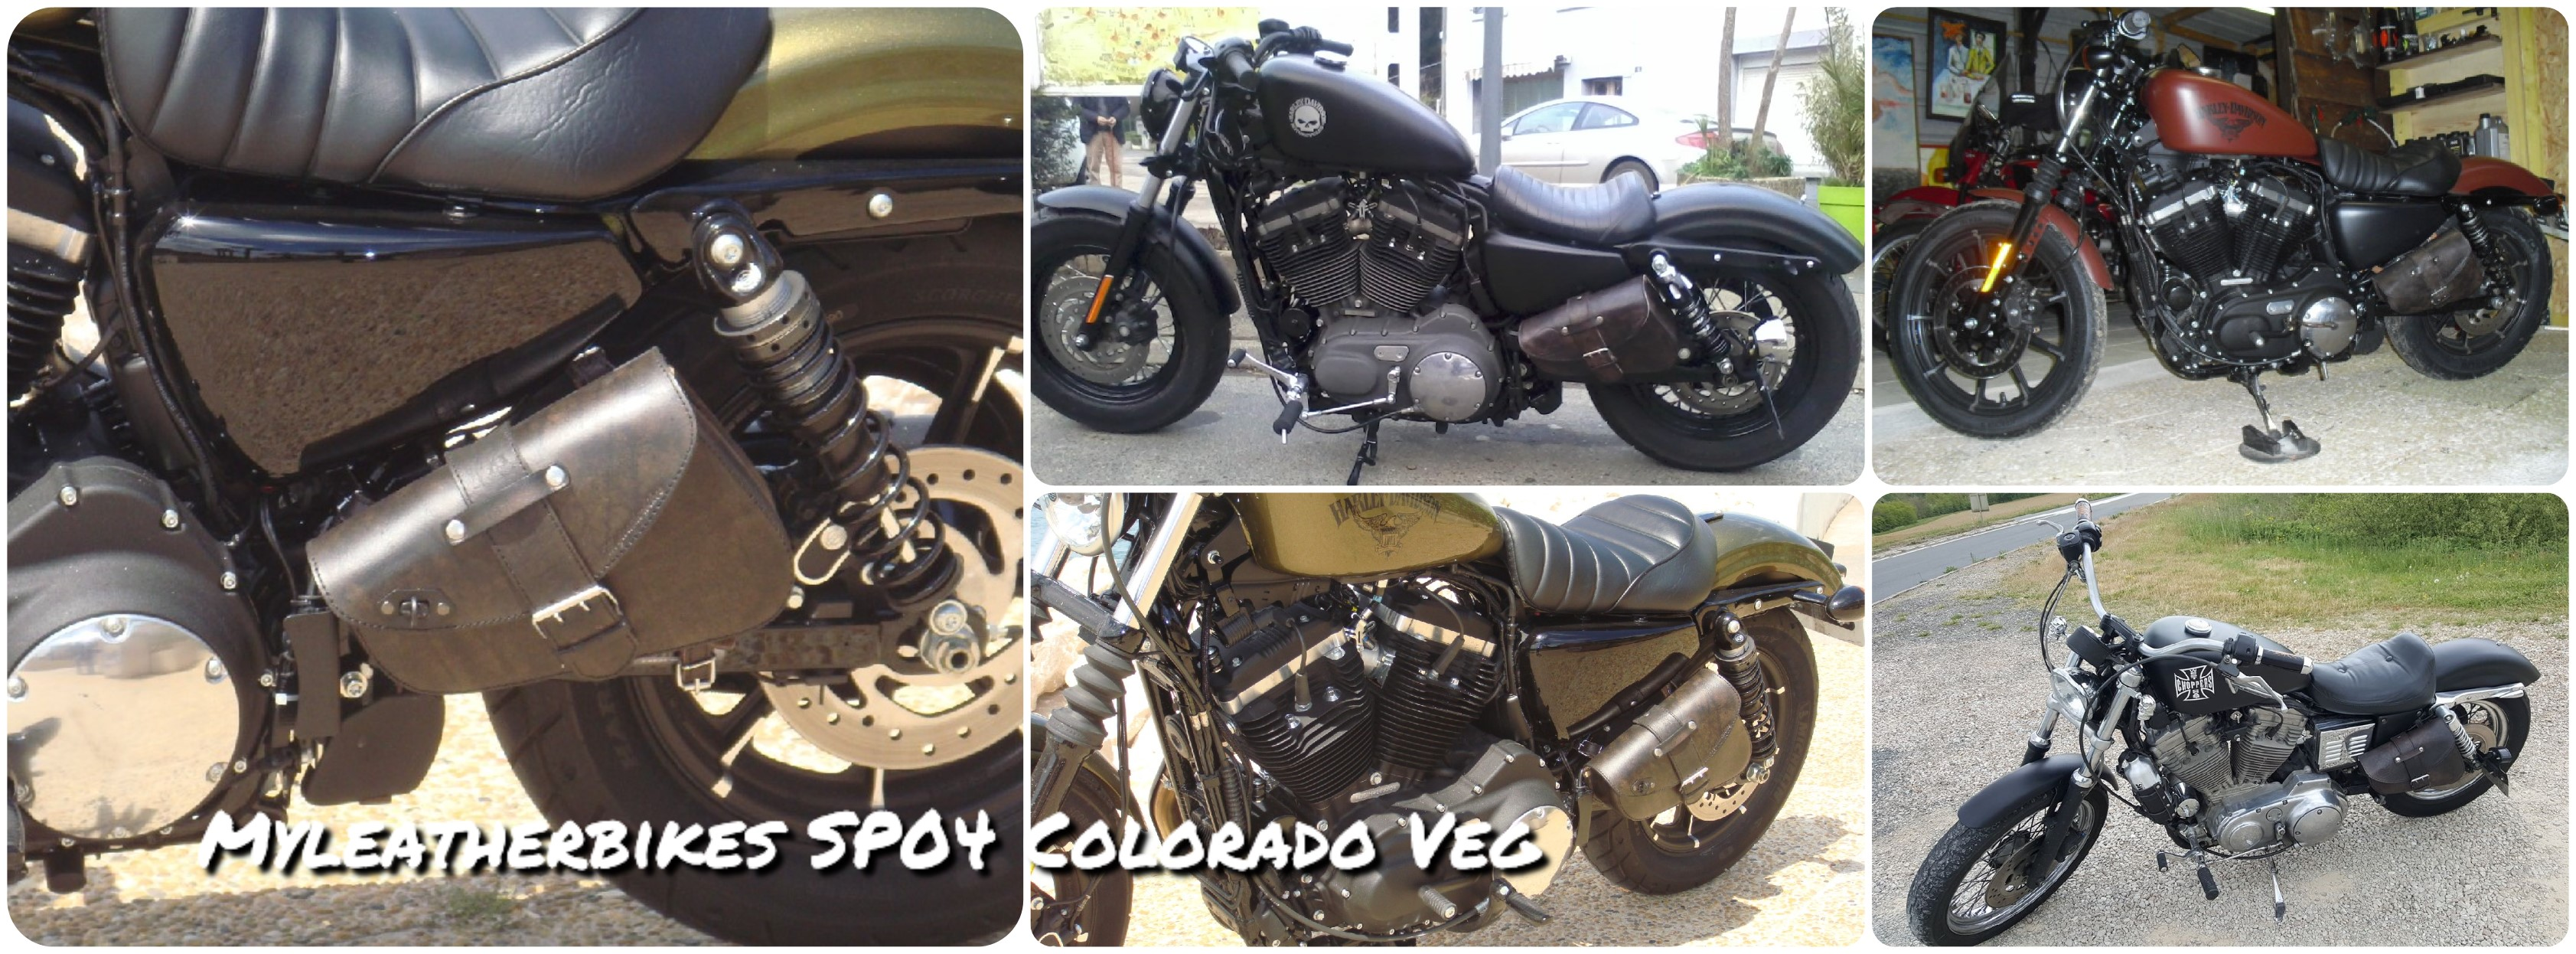 sacoche sportster sp04 colorado veg